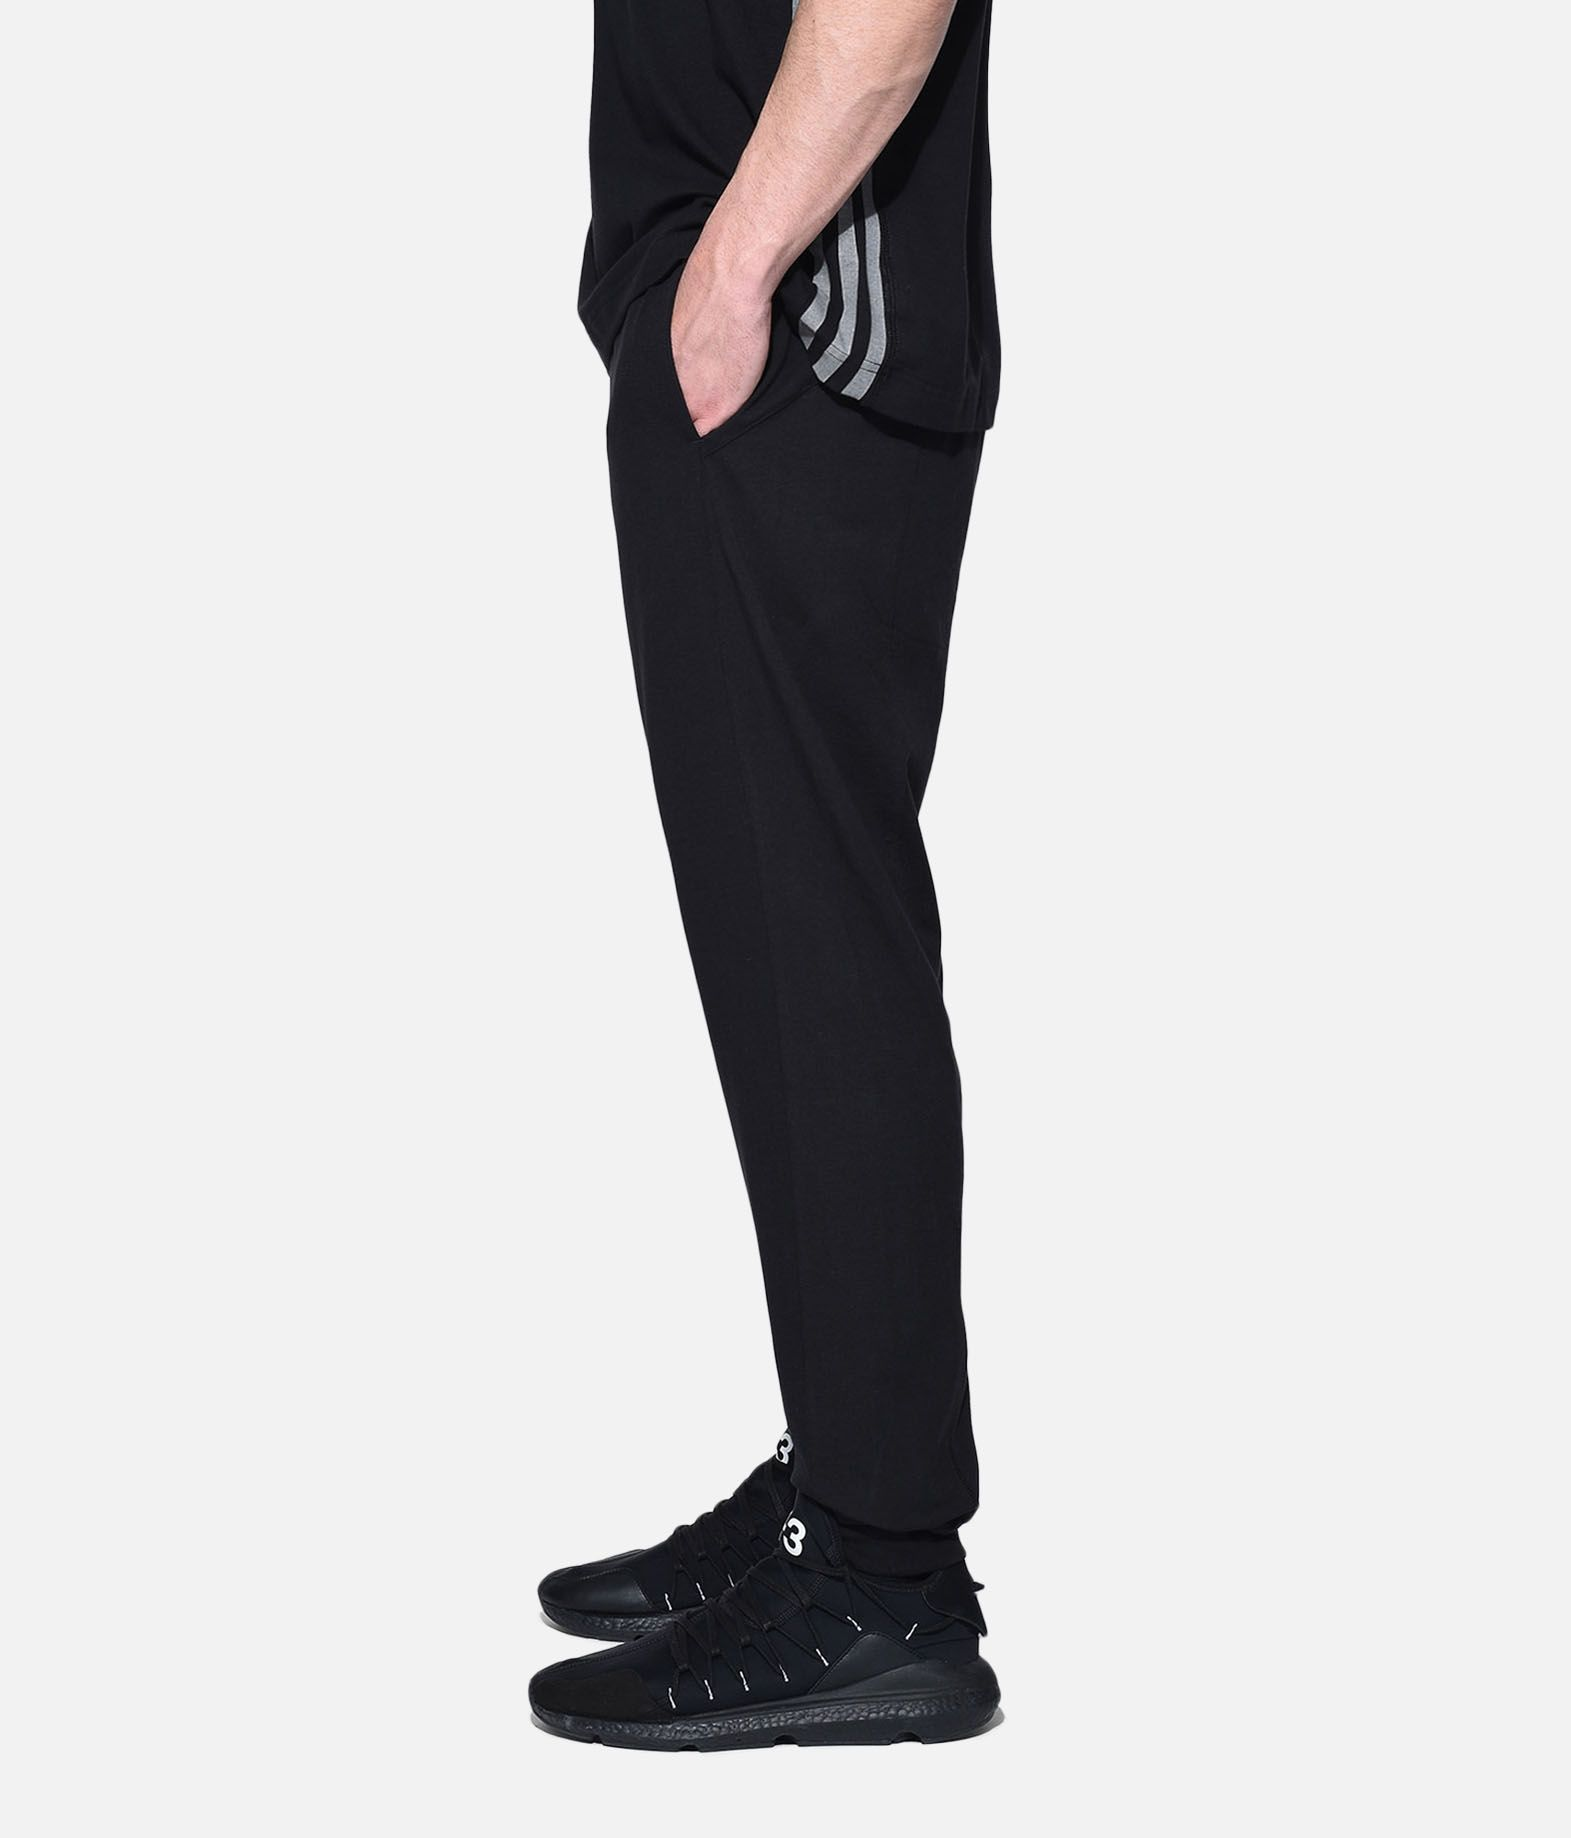 Y-3 Y-3 Logo Long John Pants Leggings Man e